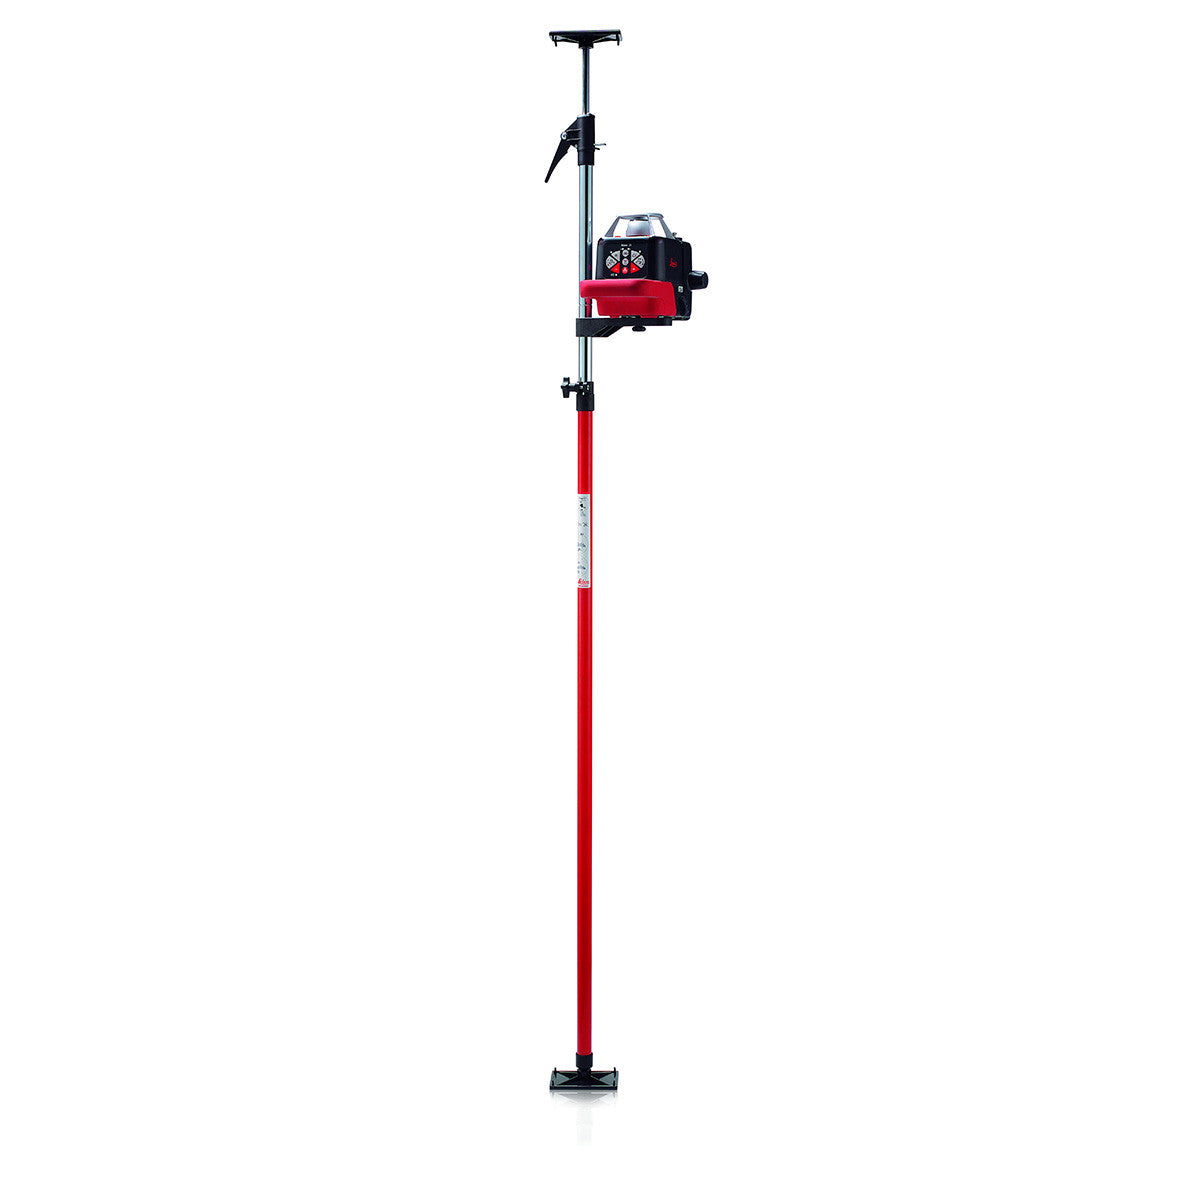 Clr290 Leica Floor To Ceiling Pole One Point Survey